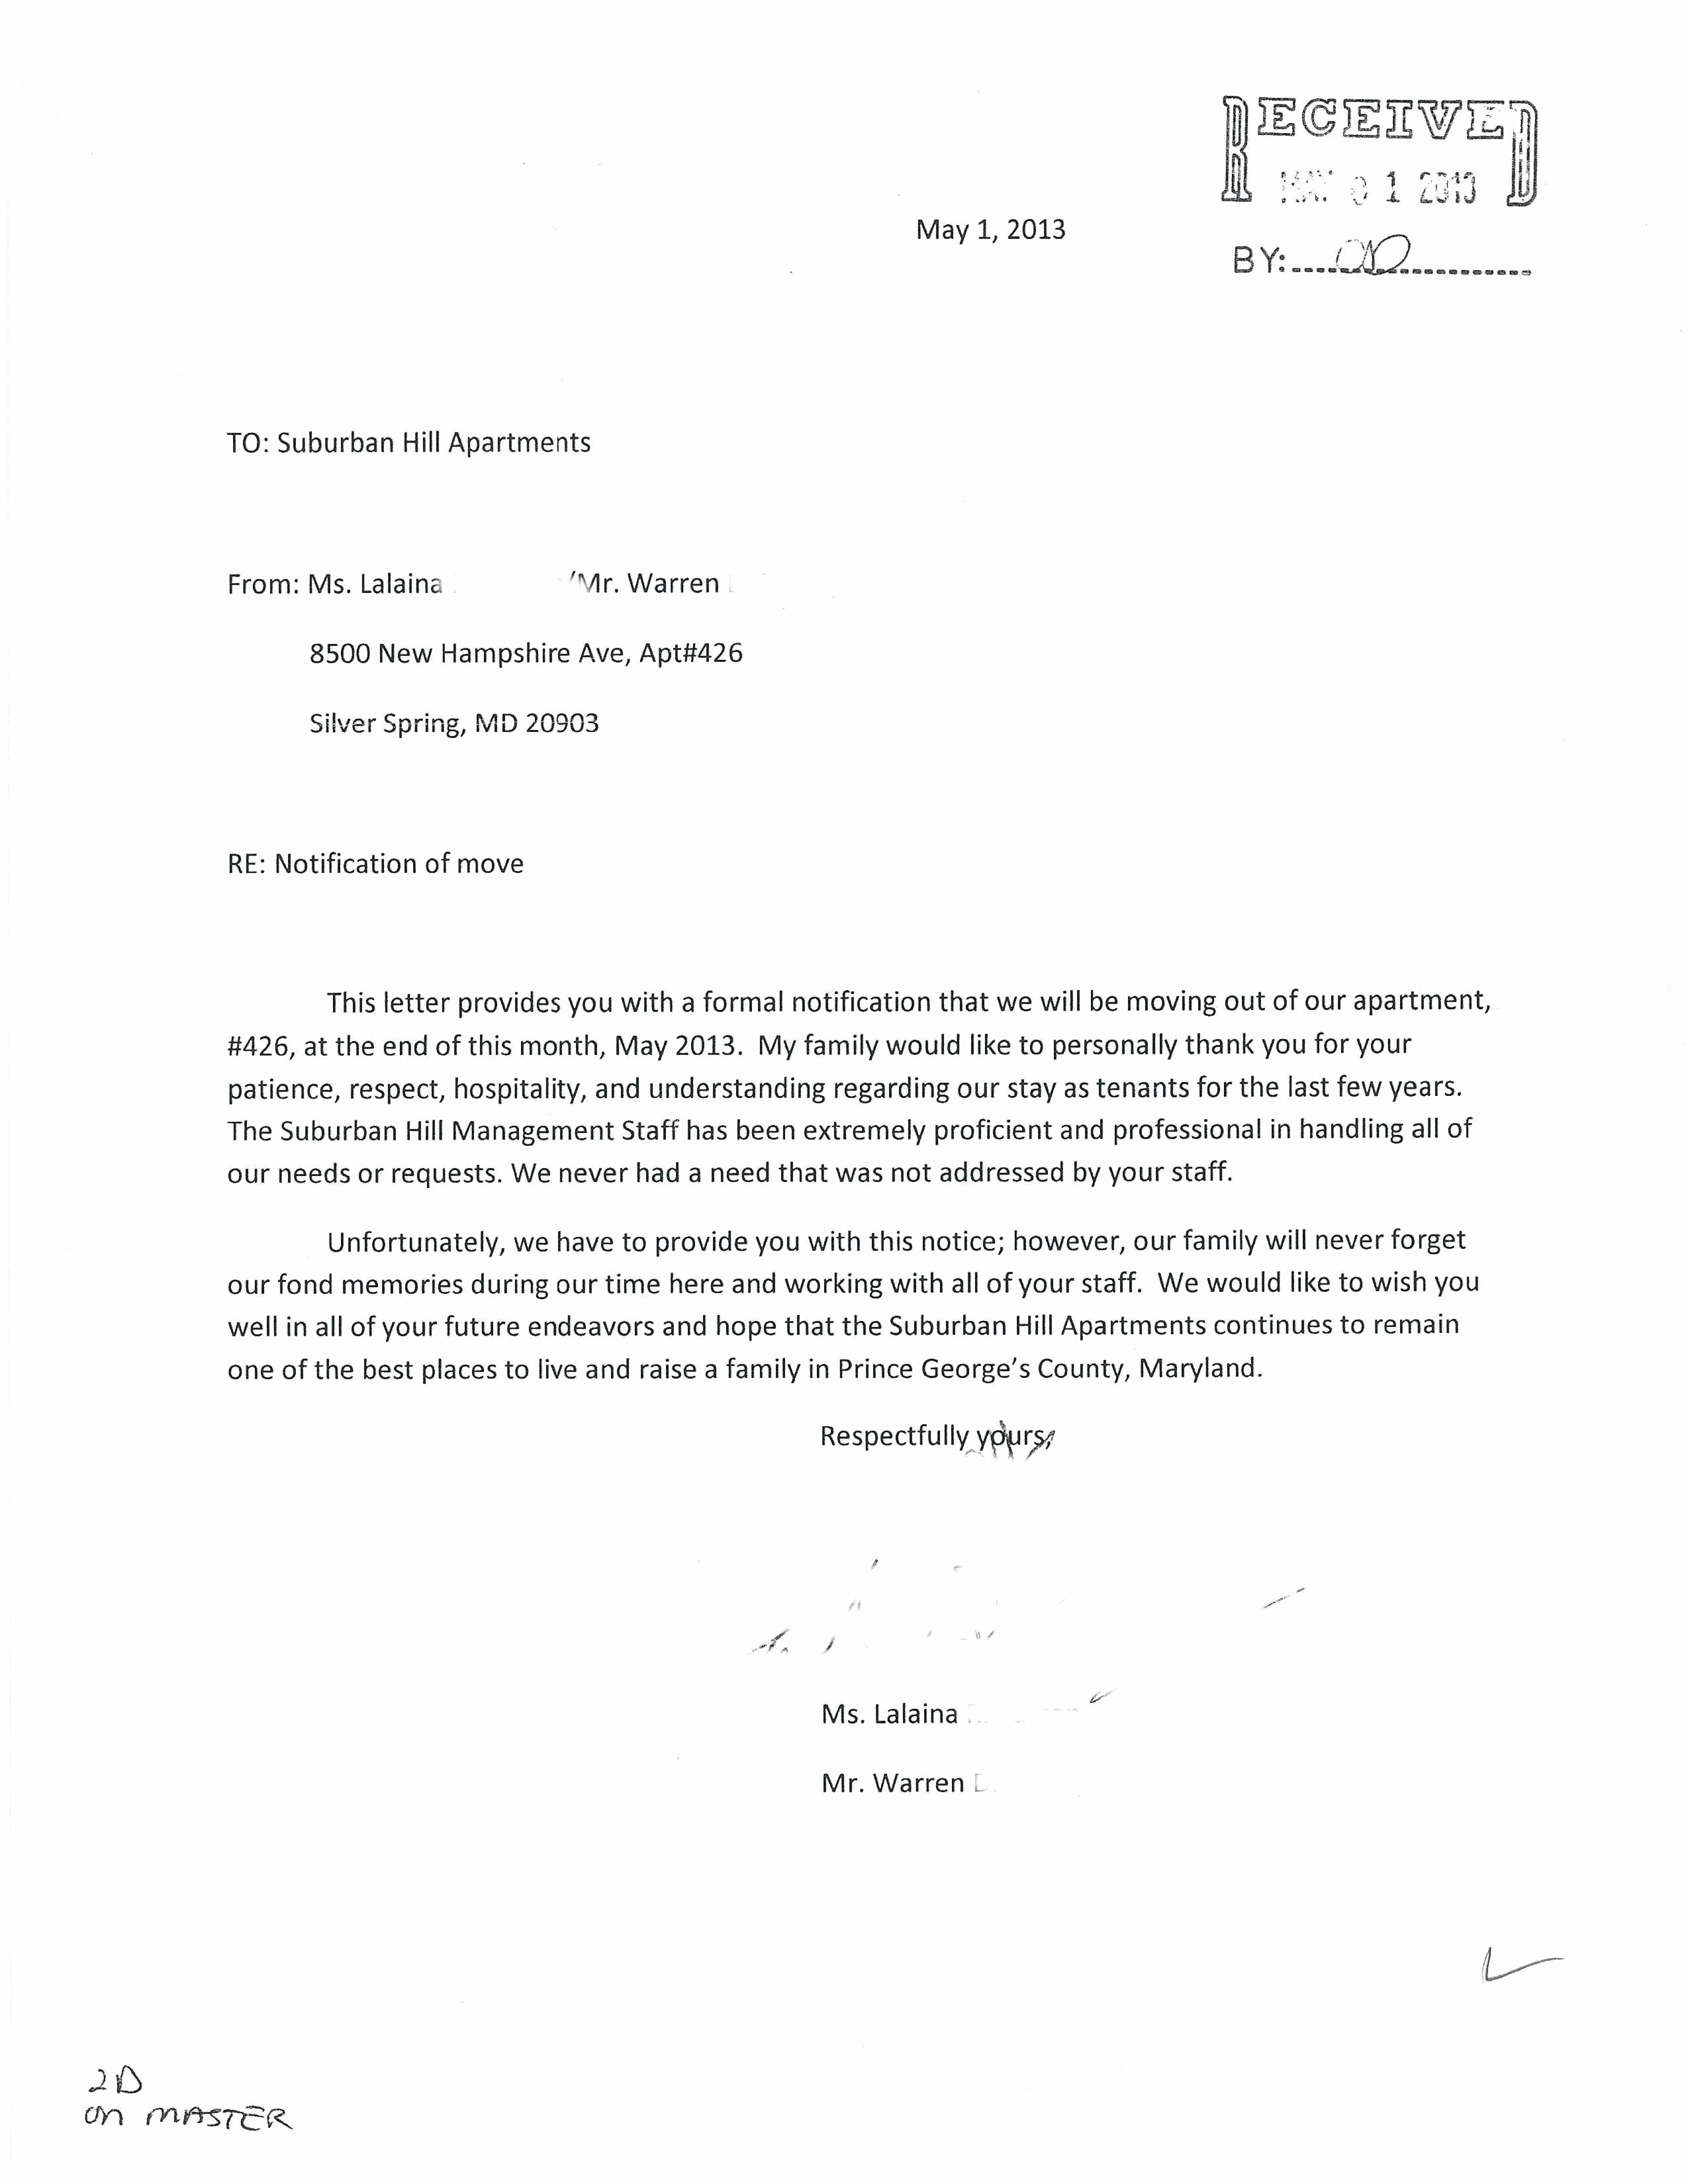 Letter Of Recommendation for Apartment Unique Suburban Hill Apartments Reviews & Testimonials